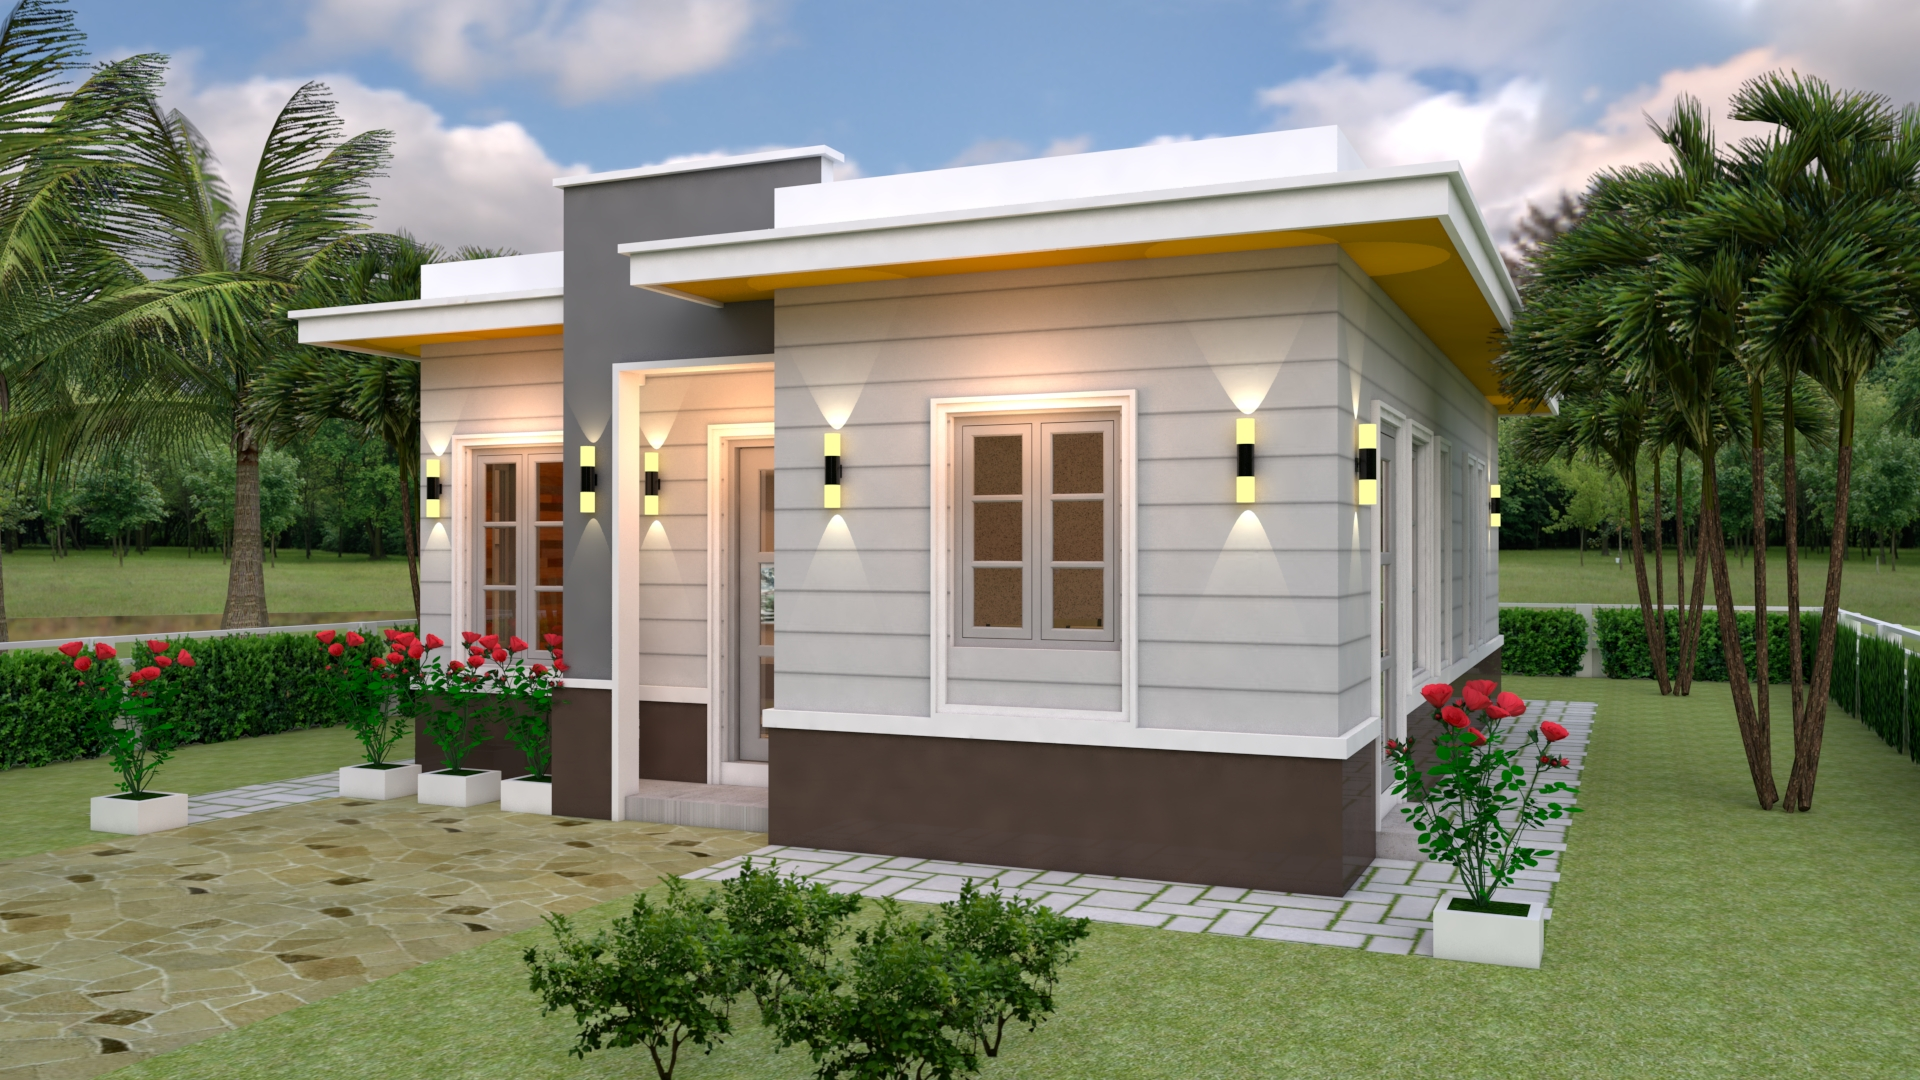 Nice Nmall Houses 7x10 Meter 23x33 Feet 3 Beds 2